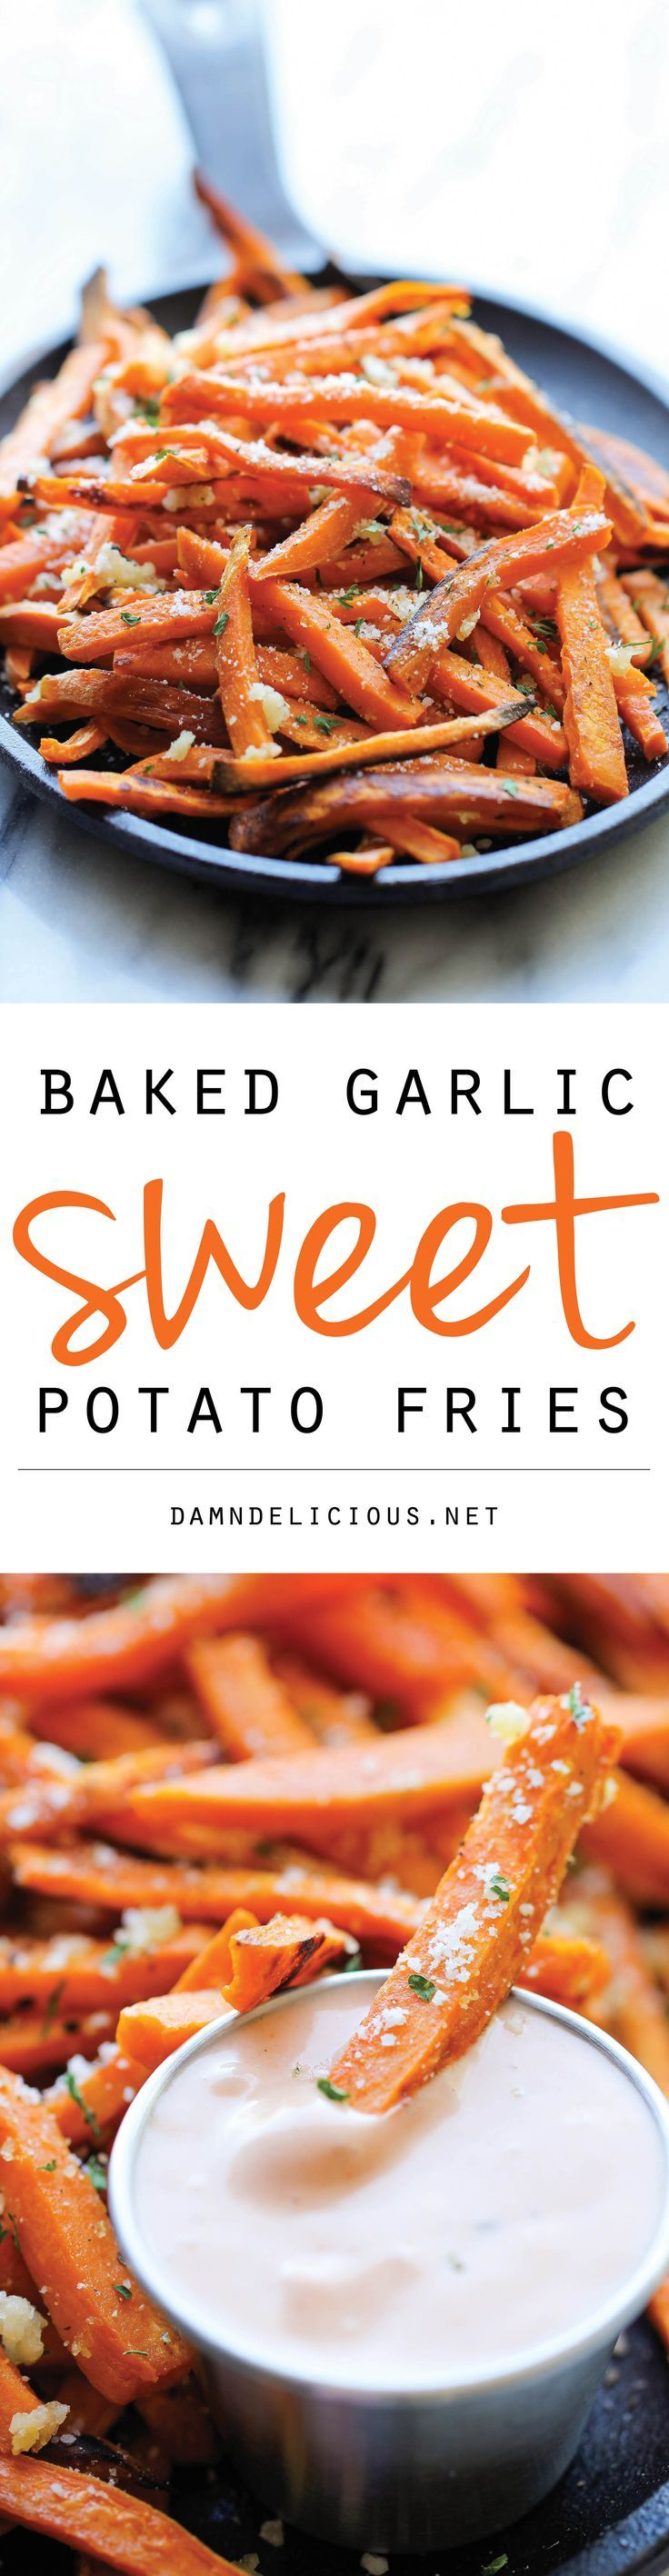 #pcosfriendly Baked Garlic Sweet Potato Fries - Amazingly crisp on the outside and tender on the inside, and so much better than the fried version!